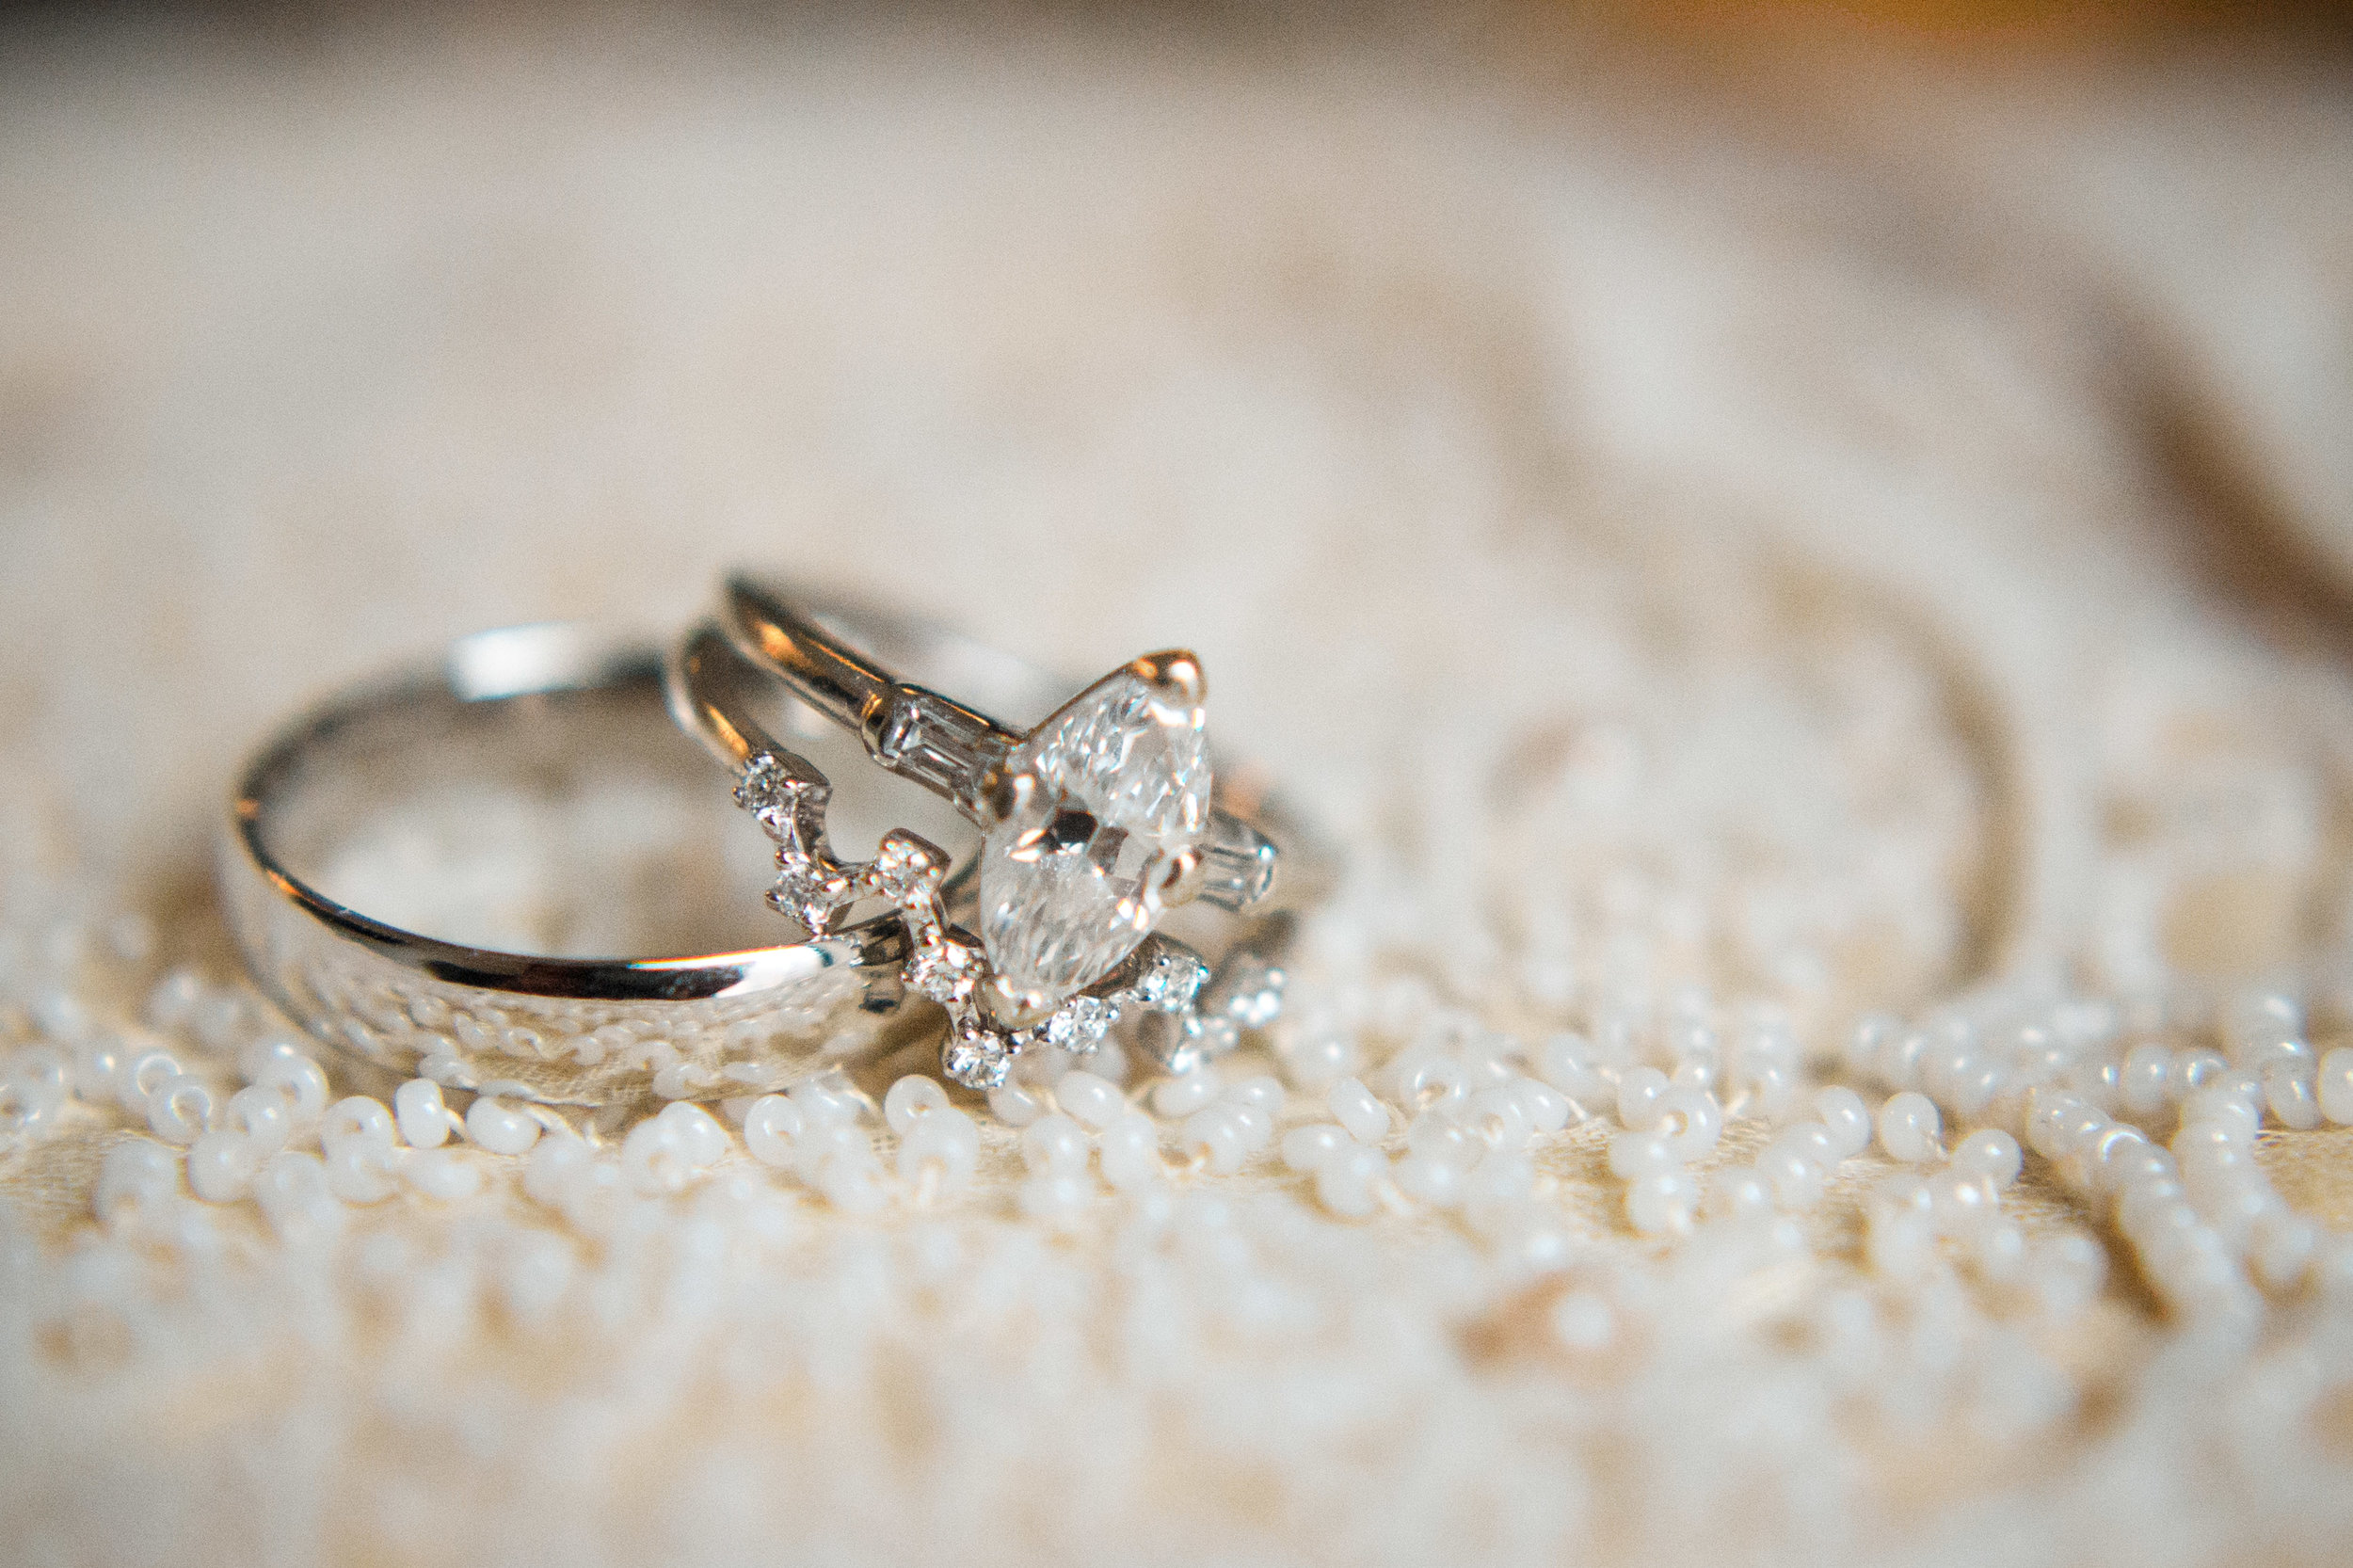 Wedding Ring detail photo.jpg